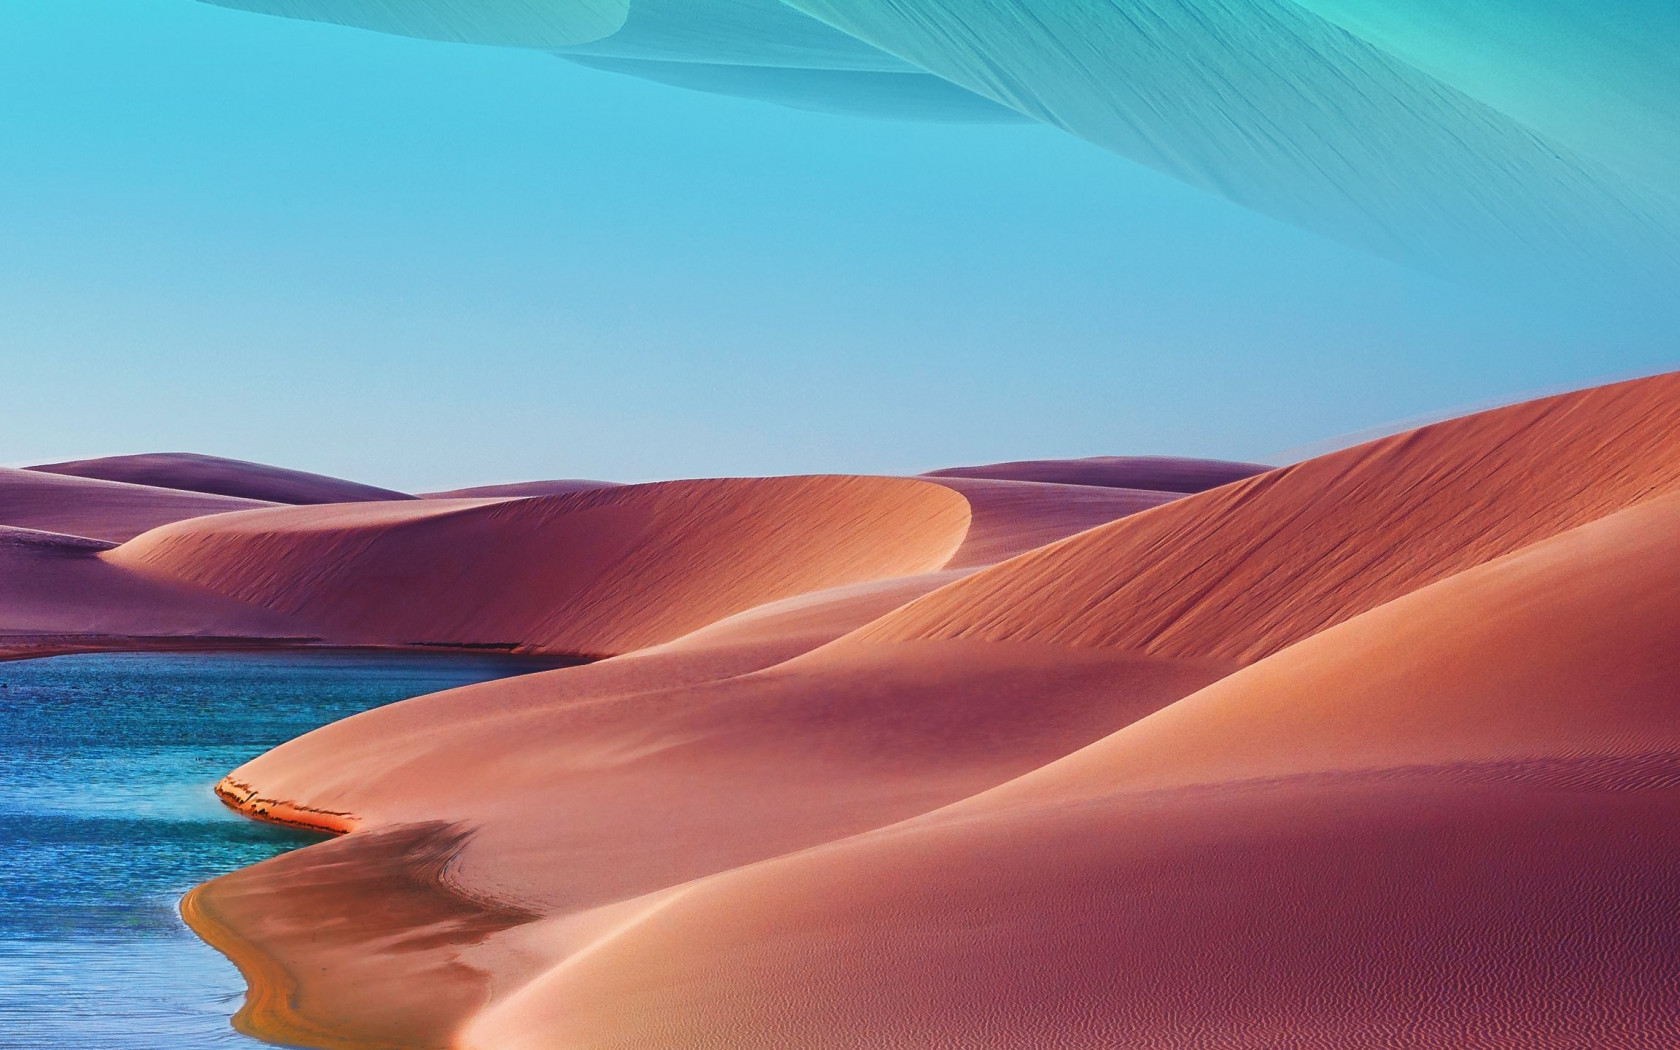 Desert dunes, lake, blue sky, hot day wallpaper 1680x1050